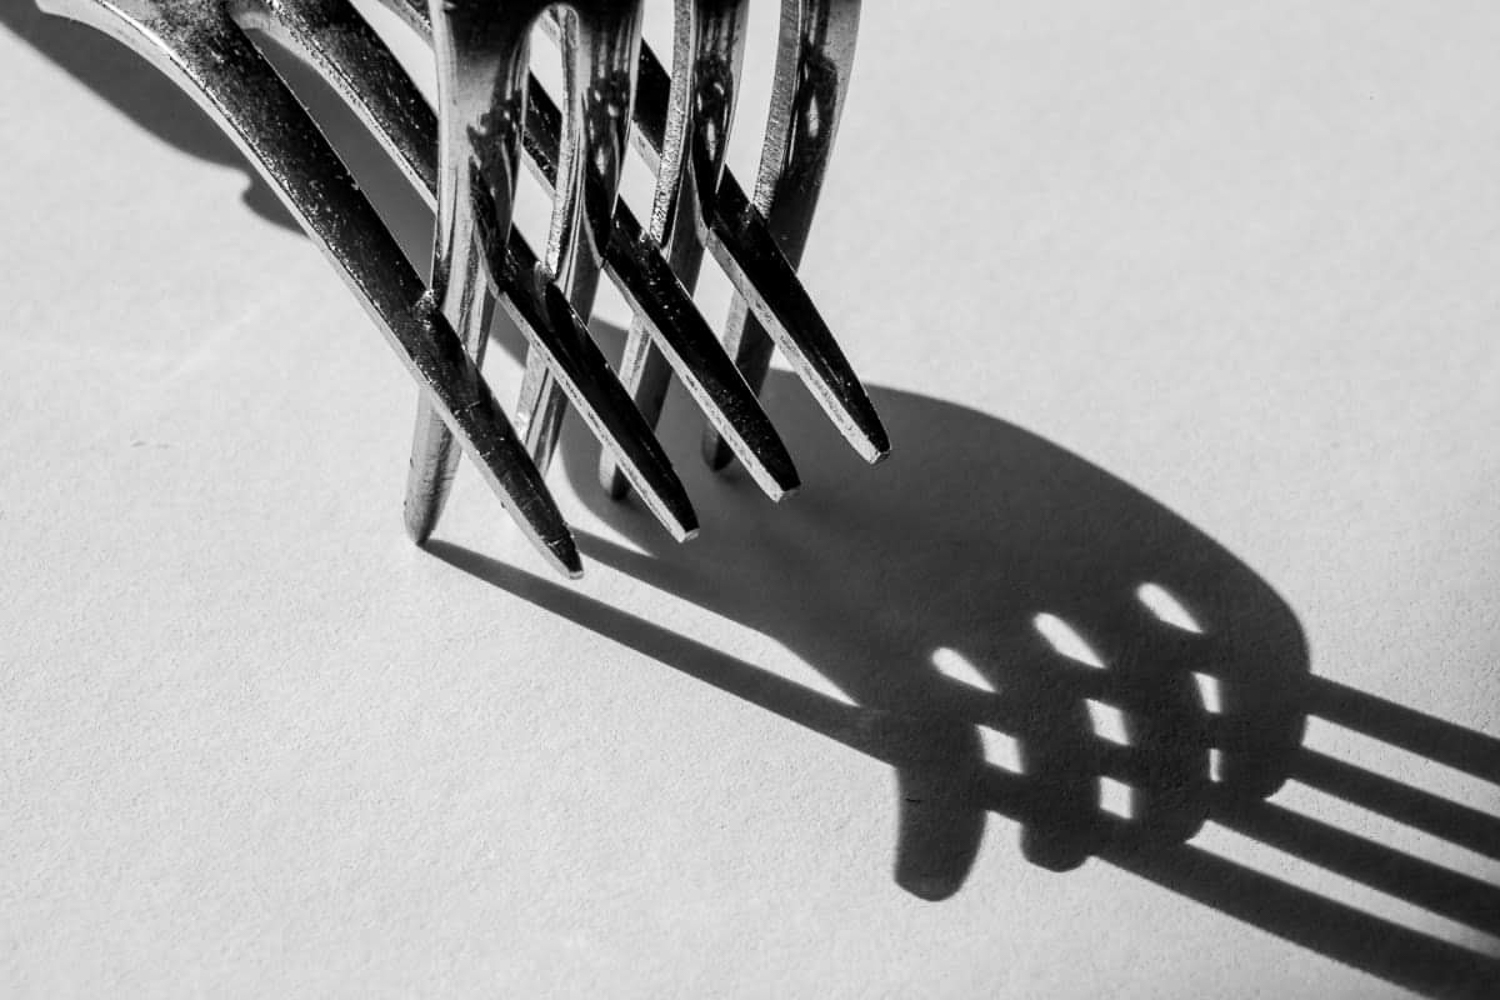 shadows-in-Photography